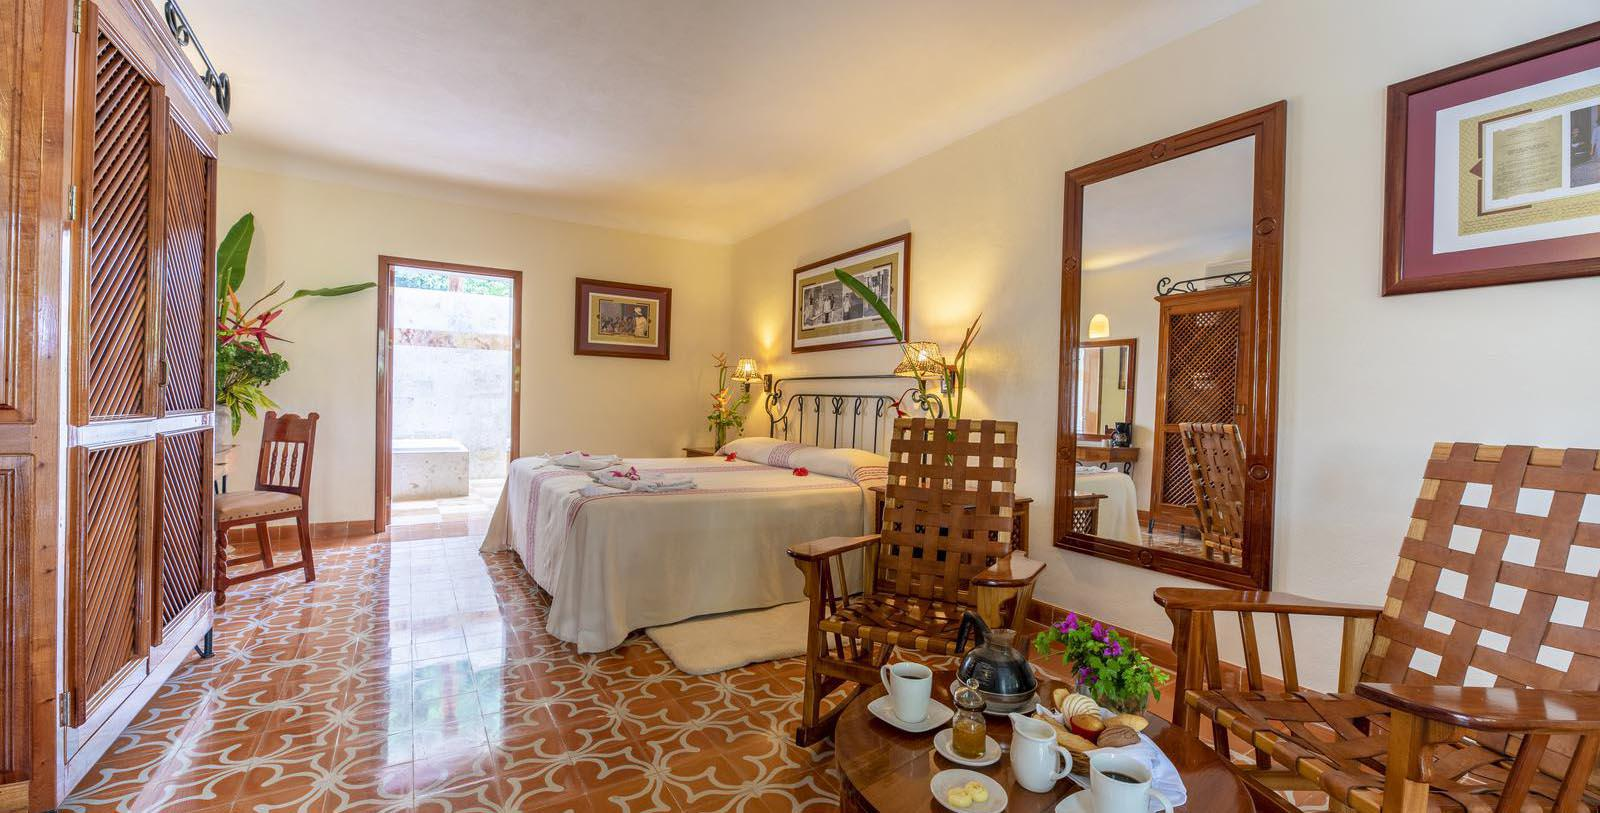 Image of Guestroom Interior, Hacienda Uxmal Plantation & Museum, Member of Historic Hotels Worldwide, Location Map